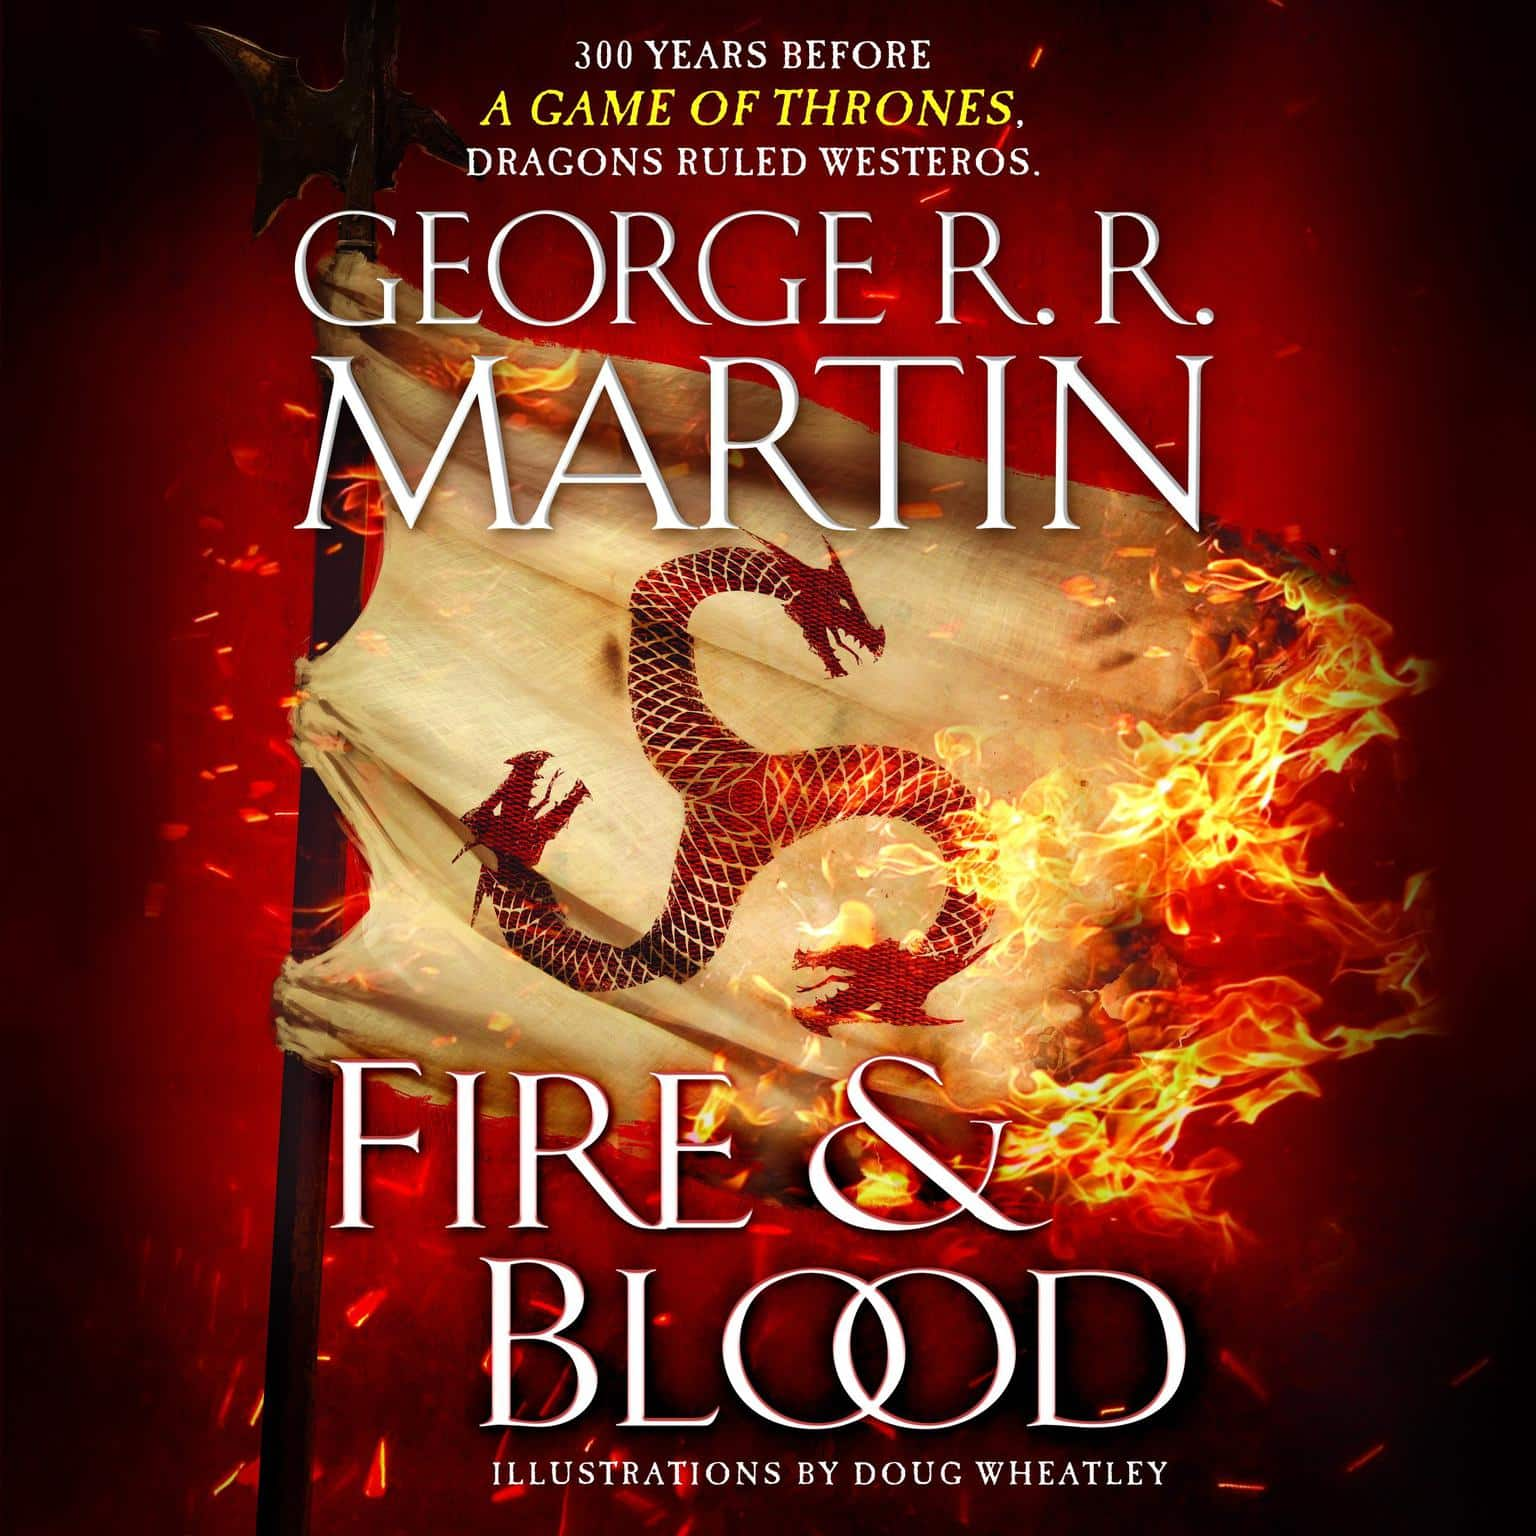 Fire & Blood Audiobook Free Download by George R.R. Martin